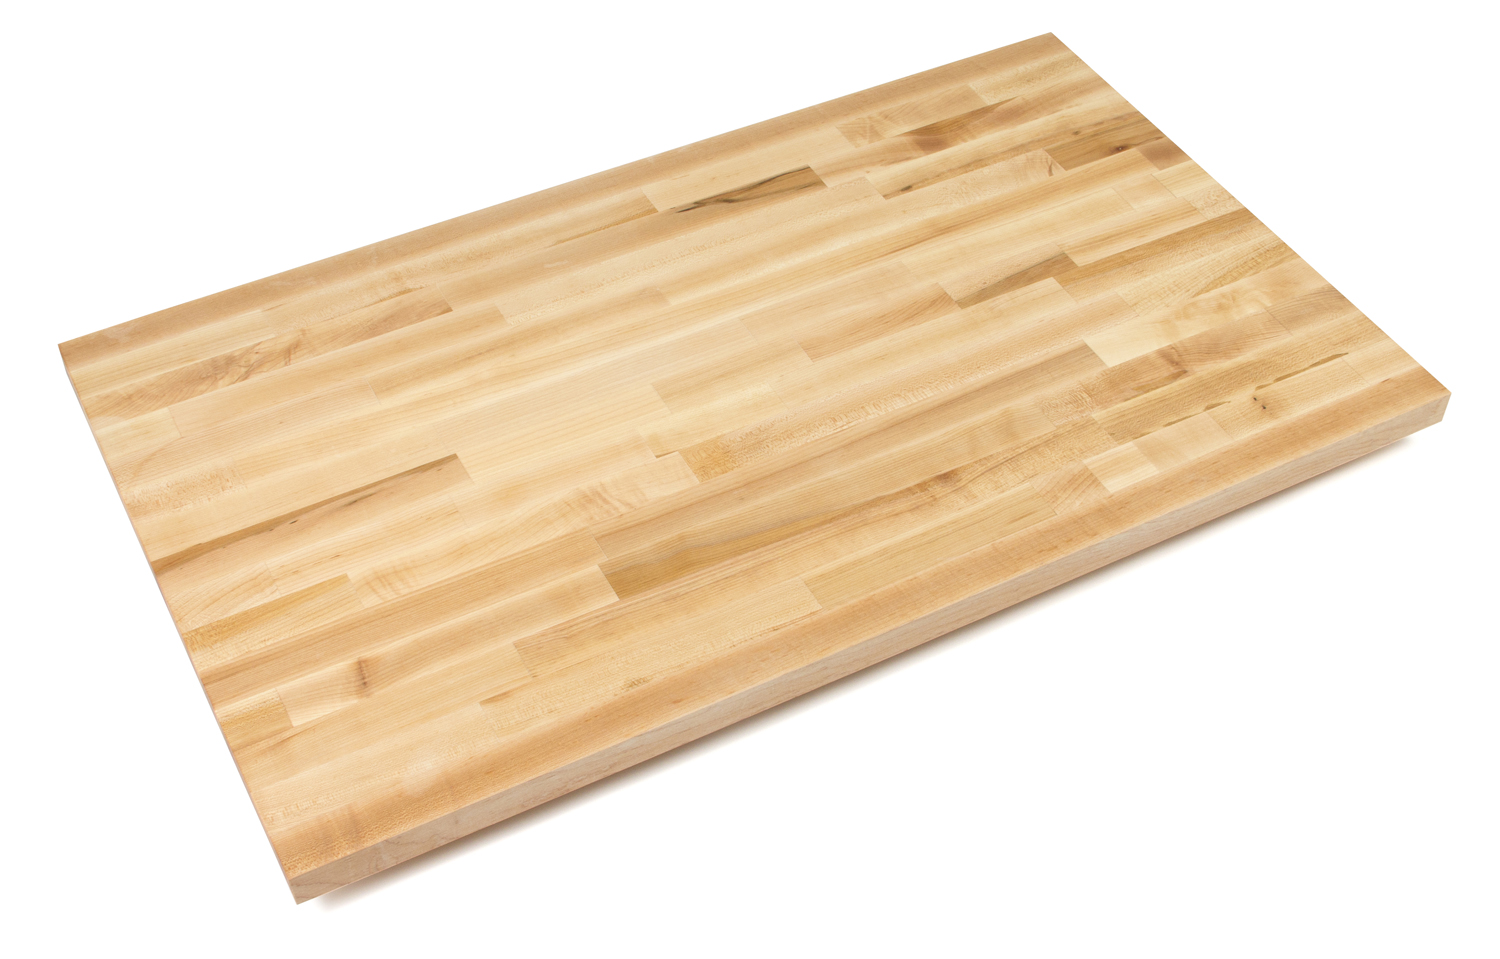 Butcher Block Countertops Price : Maple Butcher Block Countertops Boos Island Tops